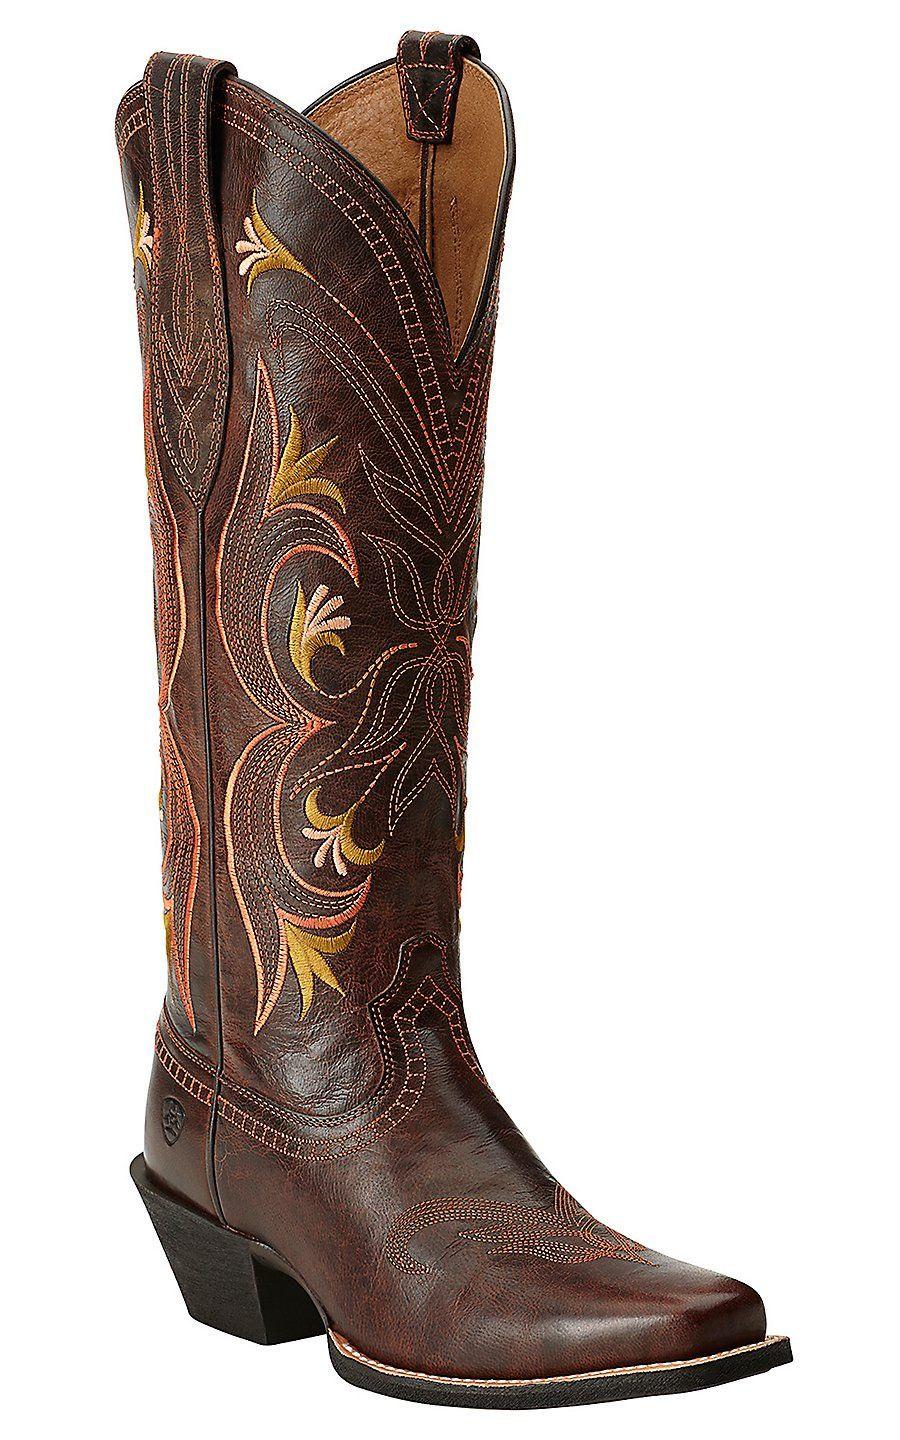 Ariat lantana womens sassy brown embroidered tall punchy